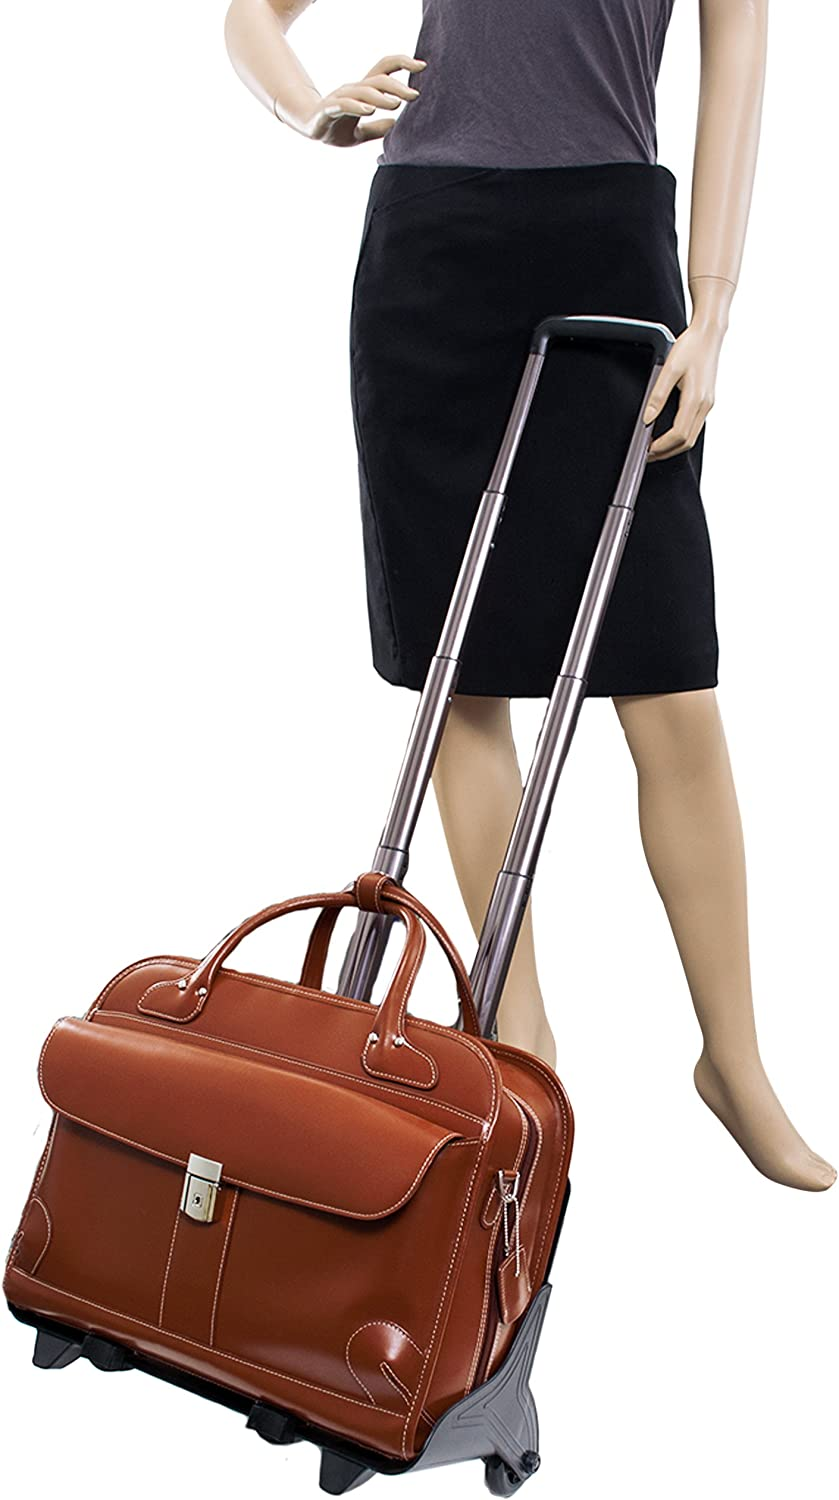 McKlein USA Lakewood Ladies Leather Fly-Through Checkpoint-Friendly Detachable Wheeled Briefcase